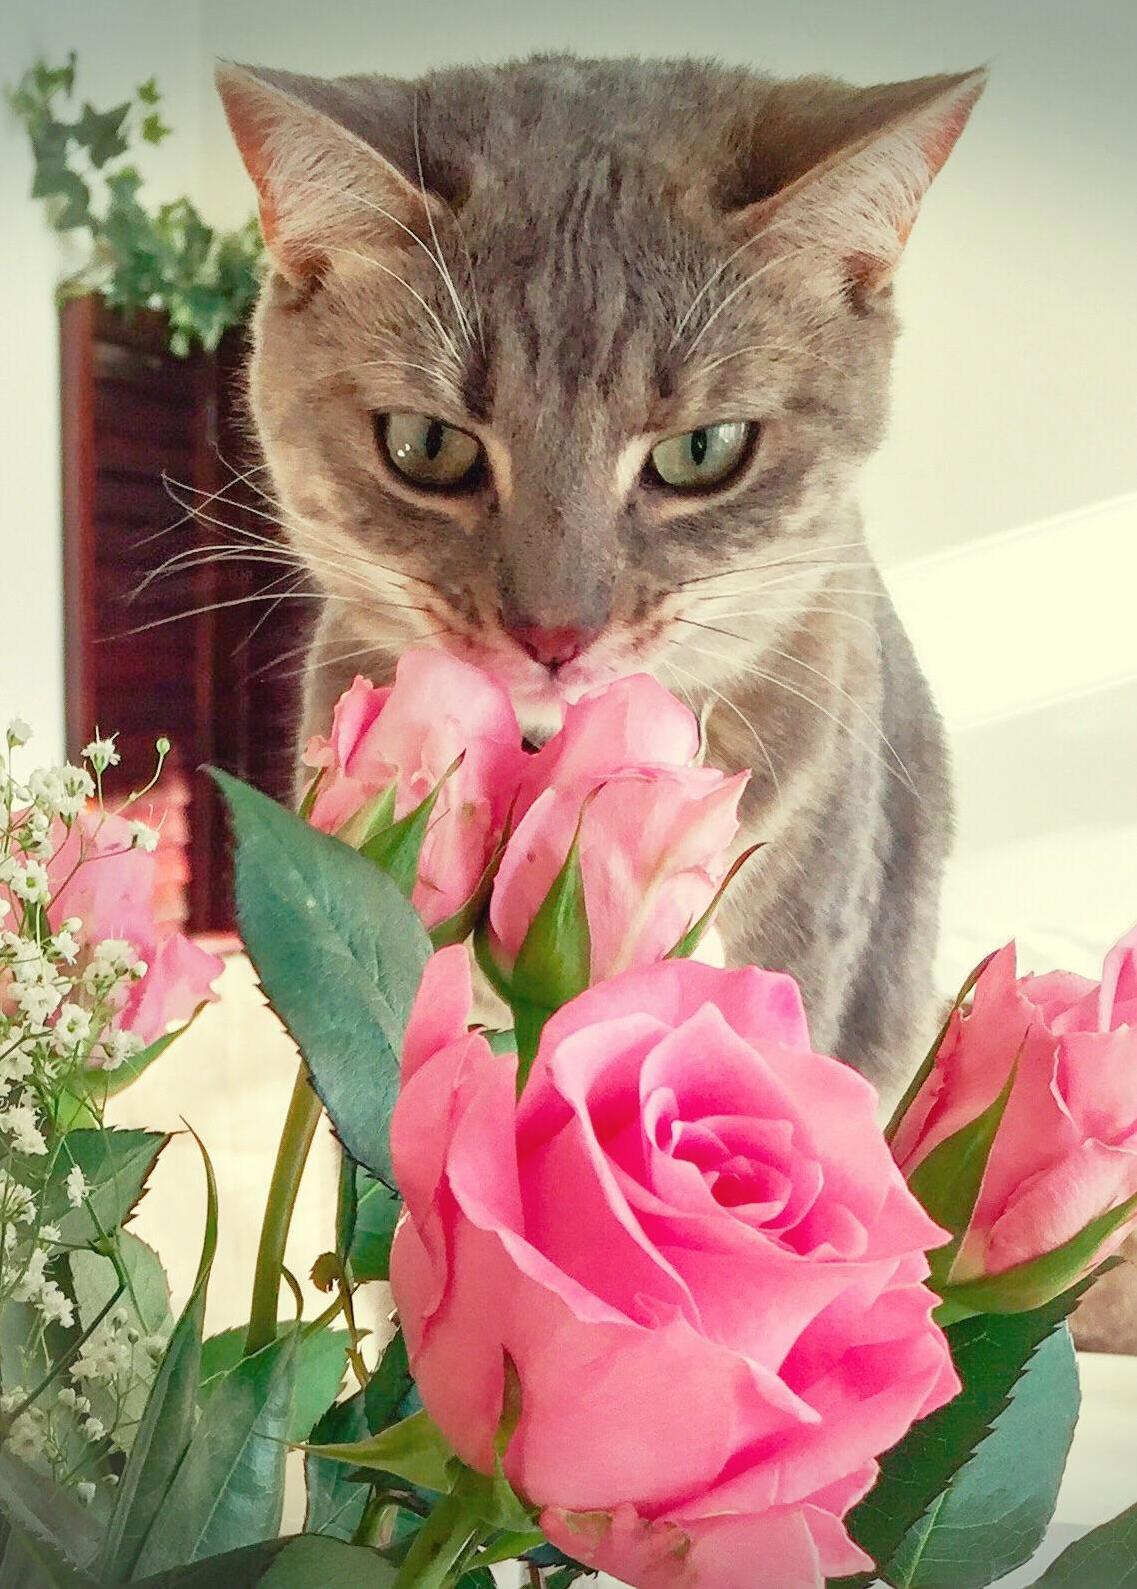 She loves roses